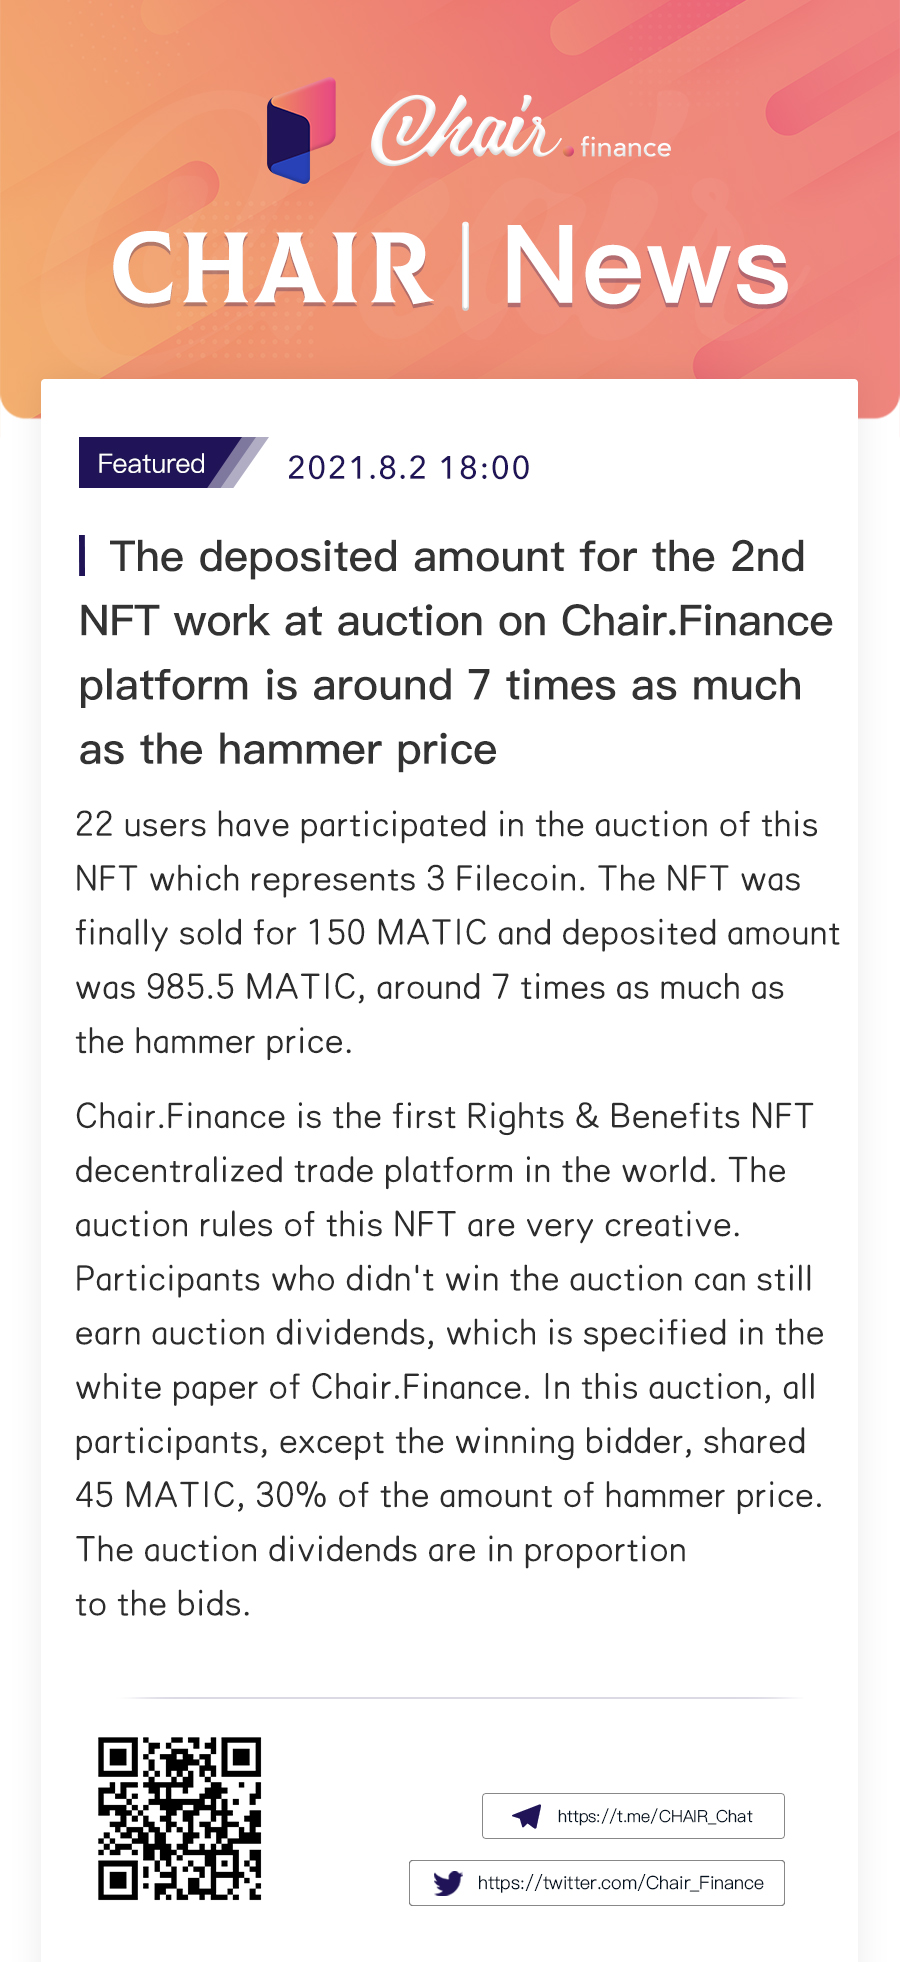 The 2nd auction of Filecoin on Chair brings a deposit amount of 7.5 times the hammer price